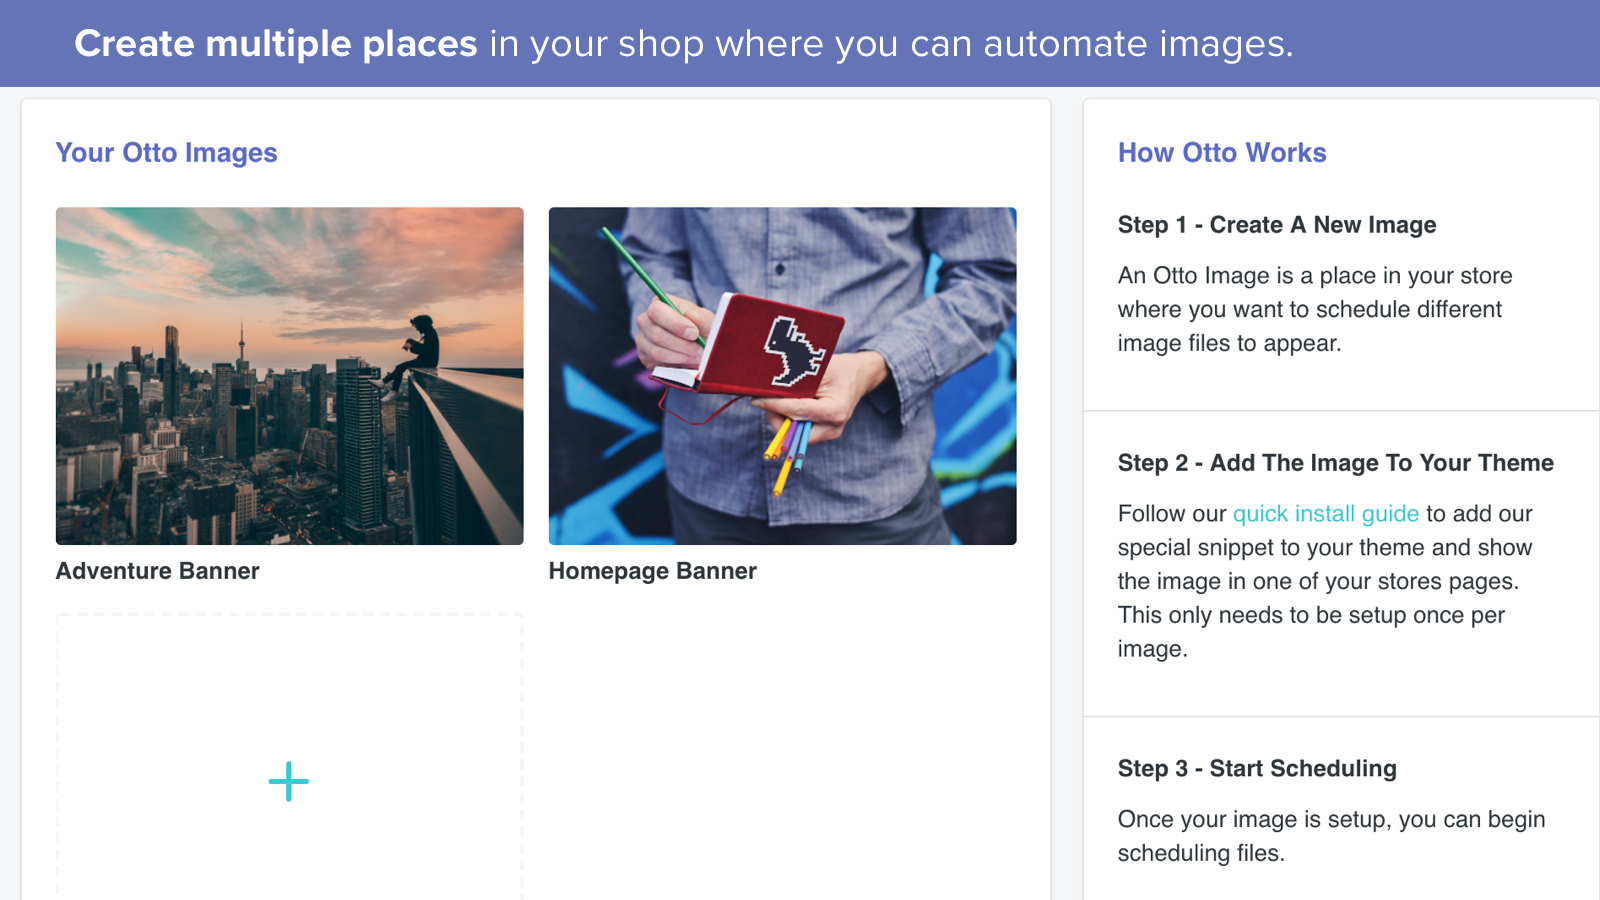 Create multiple places in your shop to automate images